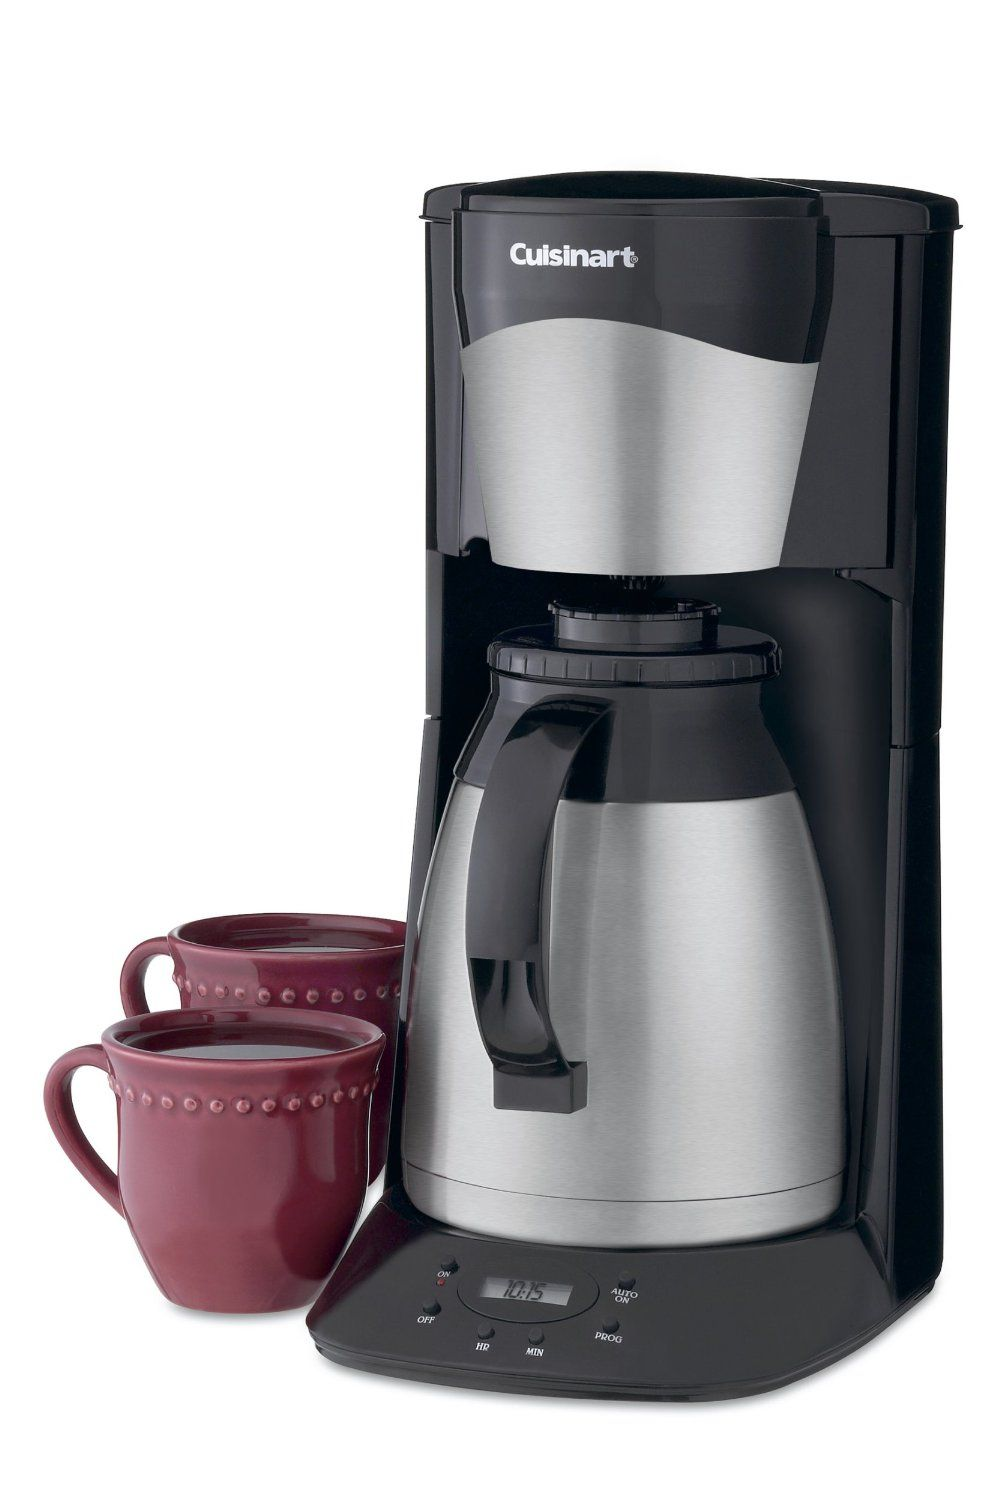 Cuisinart Dtc 975bkn Thermal 12 Cup Programmable Coffeemaker Black Cuisinart Coffee Maker Thermal Coffee Maker Best Coffee Maker